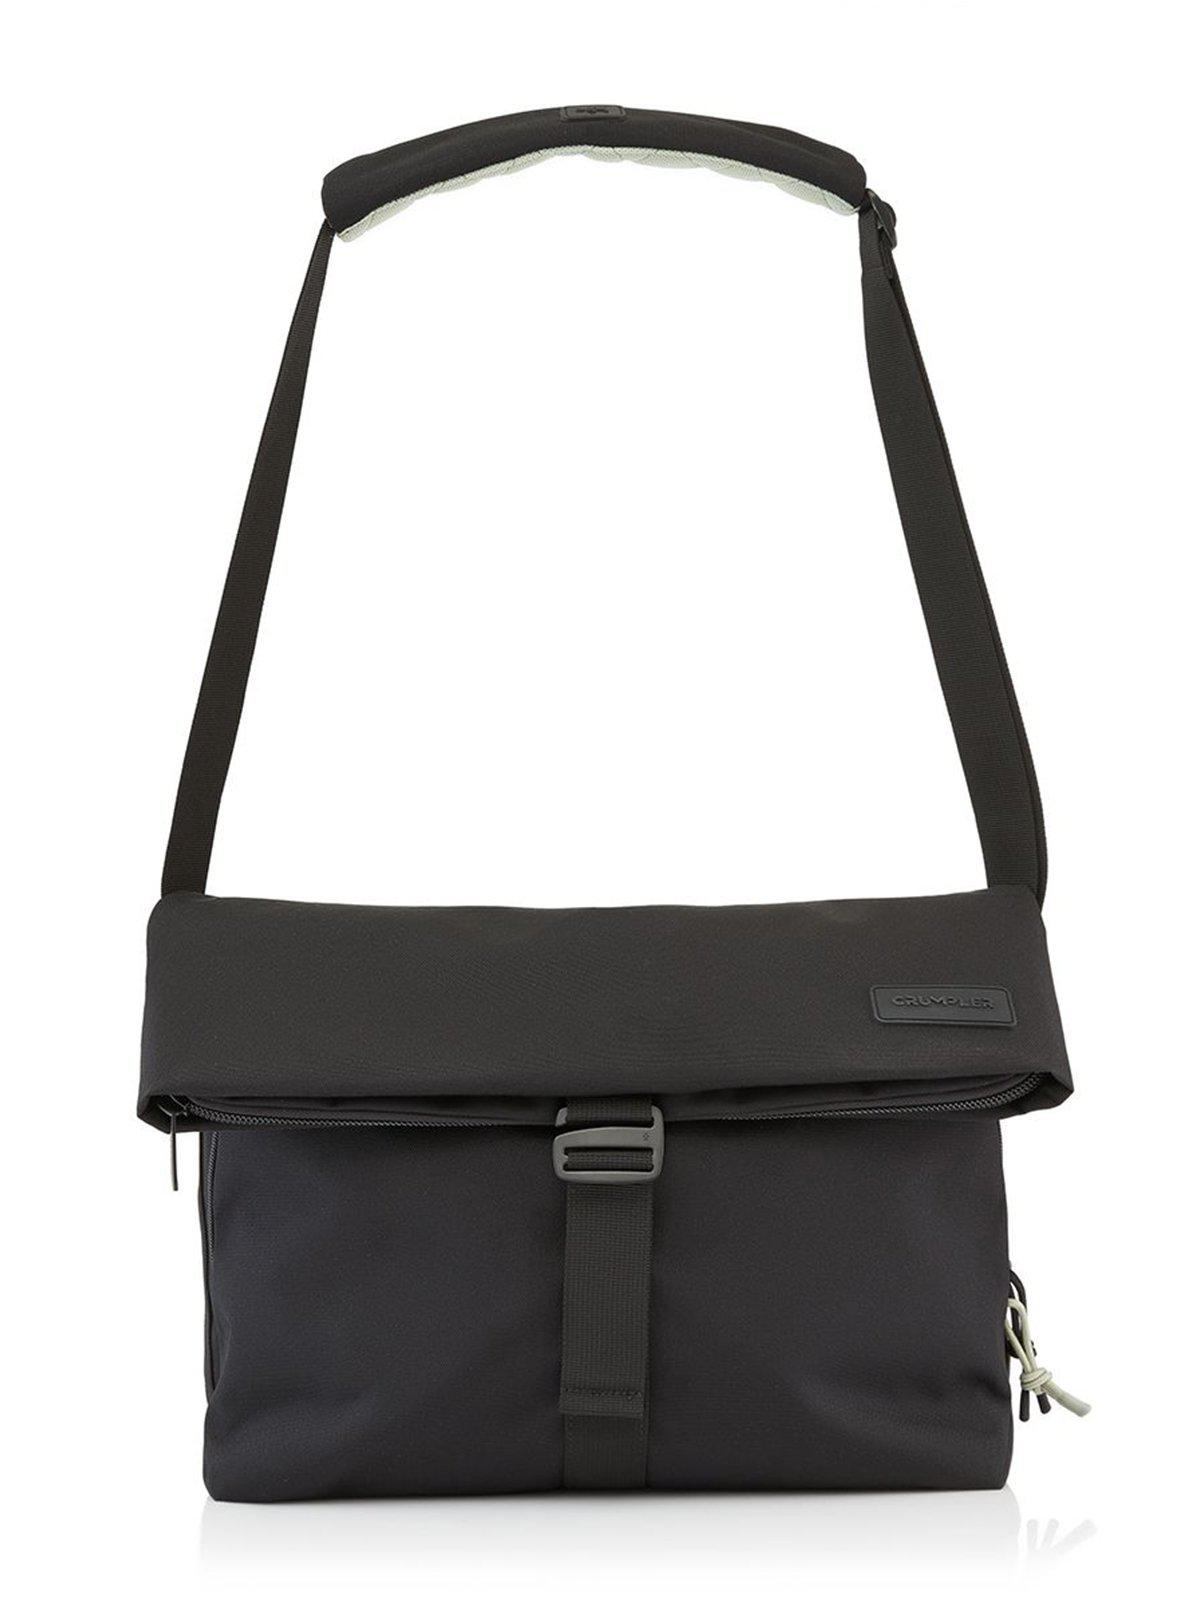 Crumpler Strength of Character Messenger Black